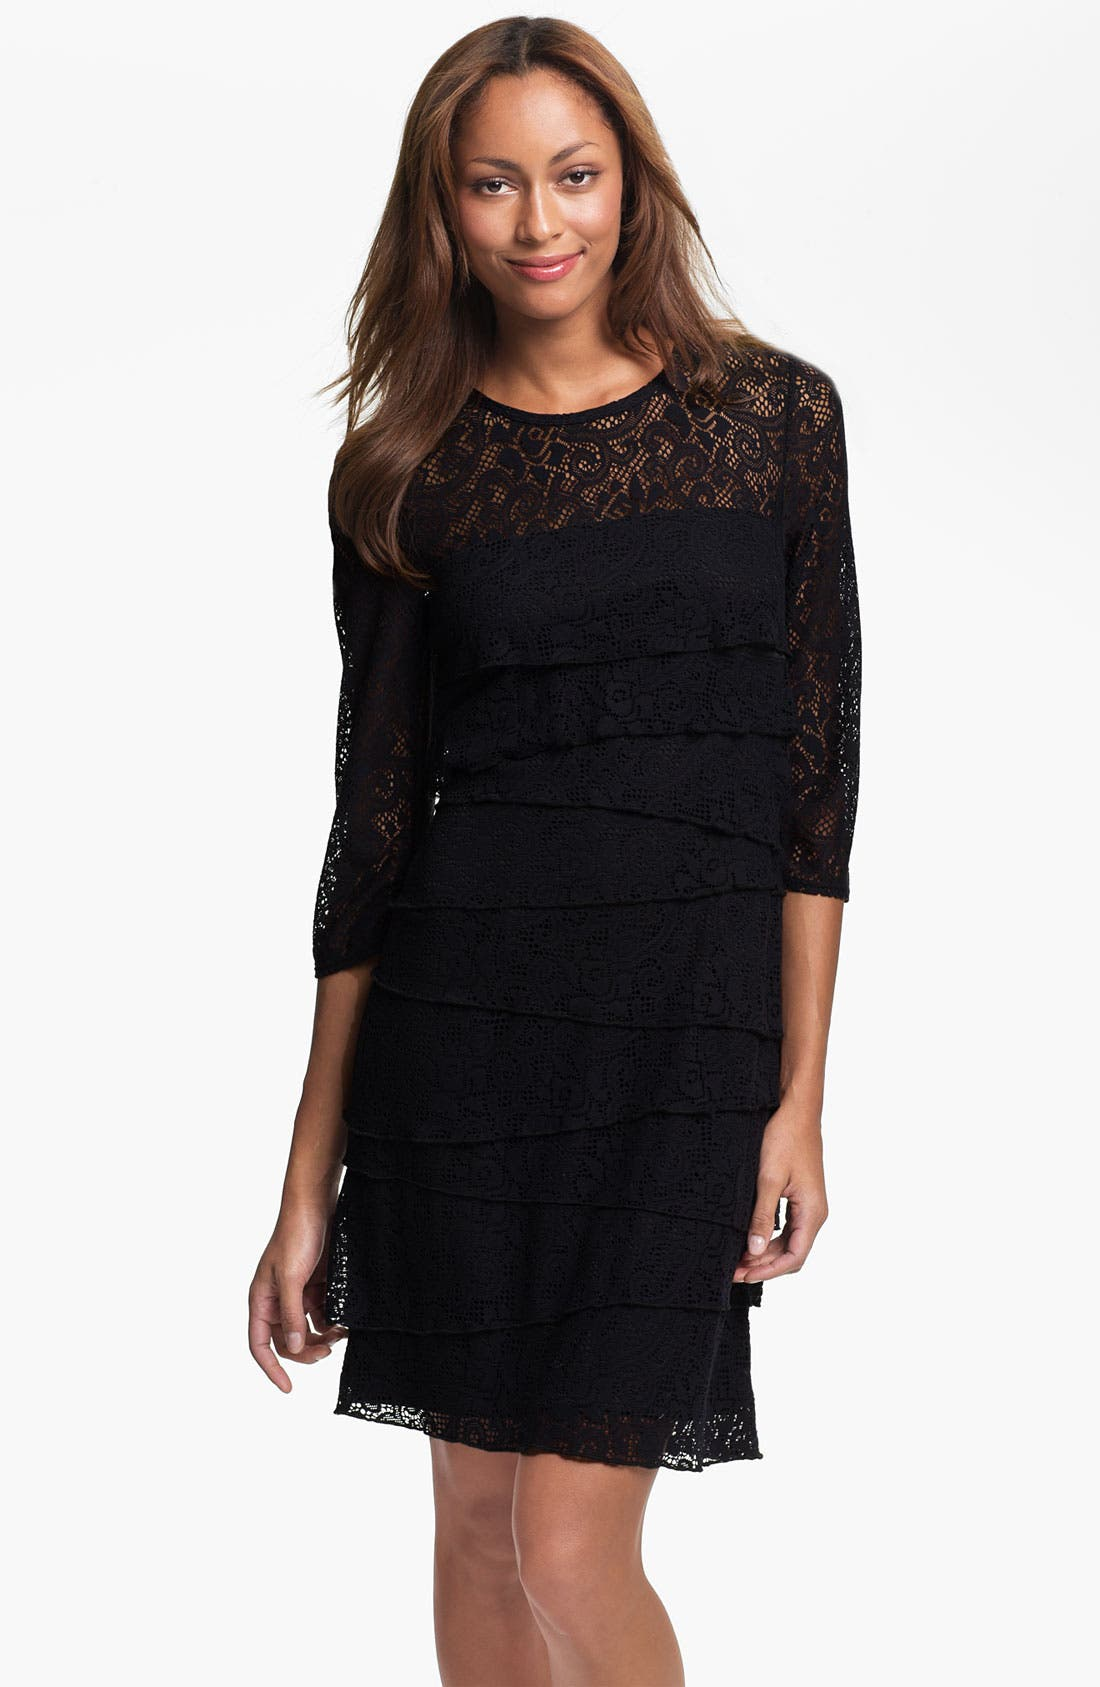 Alternate Image 1 Selected - Laundry by Shelli Segal Illusion Yoke Tiered Lace Dress